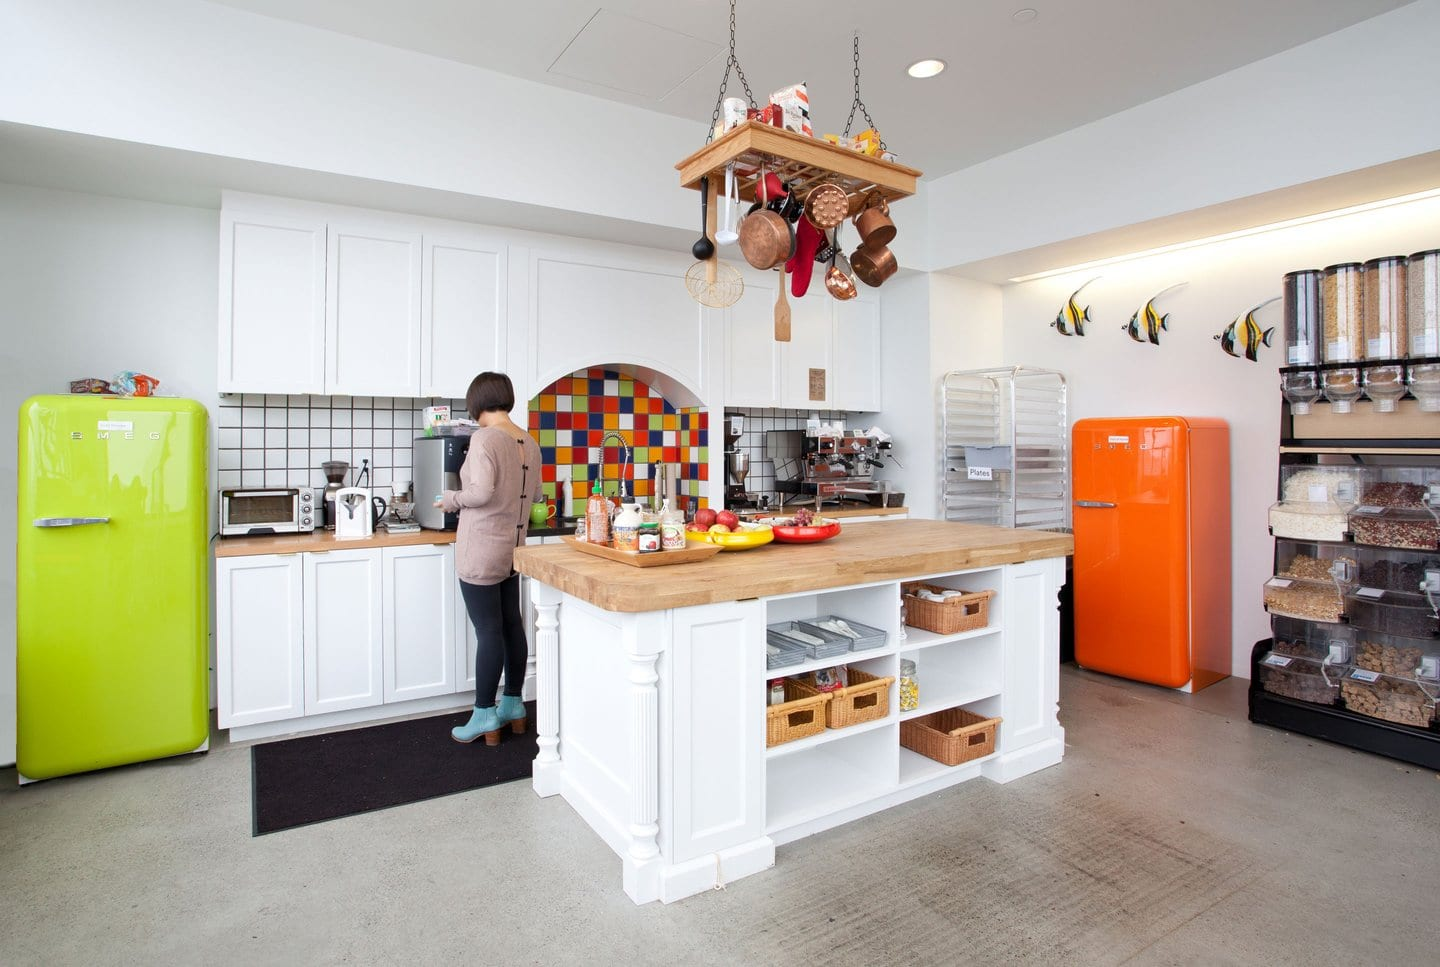 airbnb-kitchen-cool-office-design-office-interiors ...